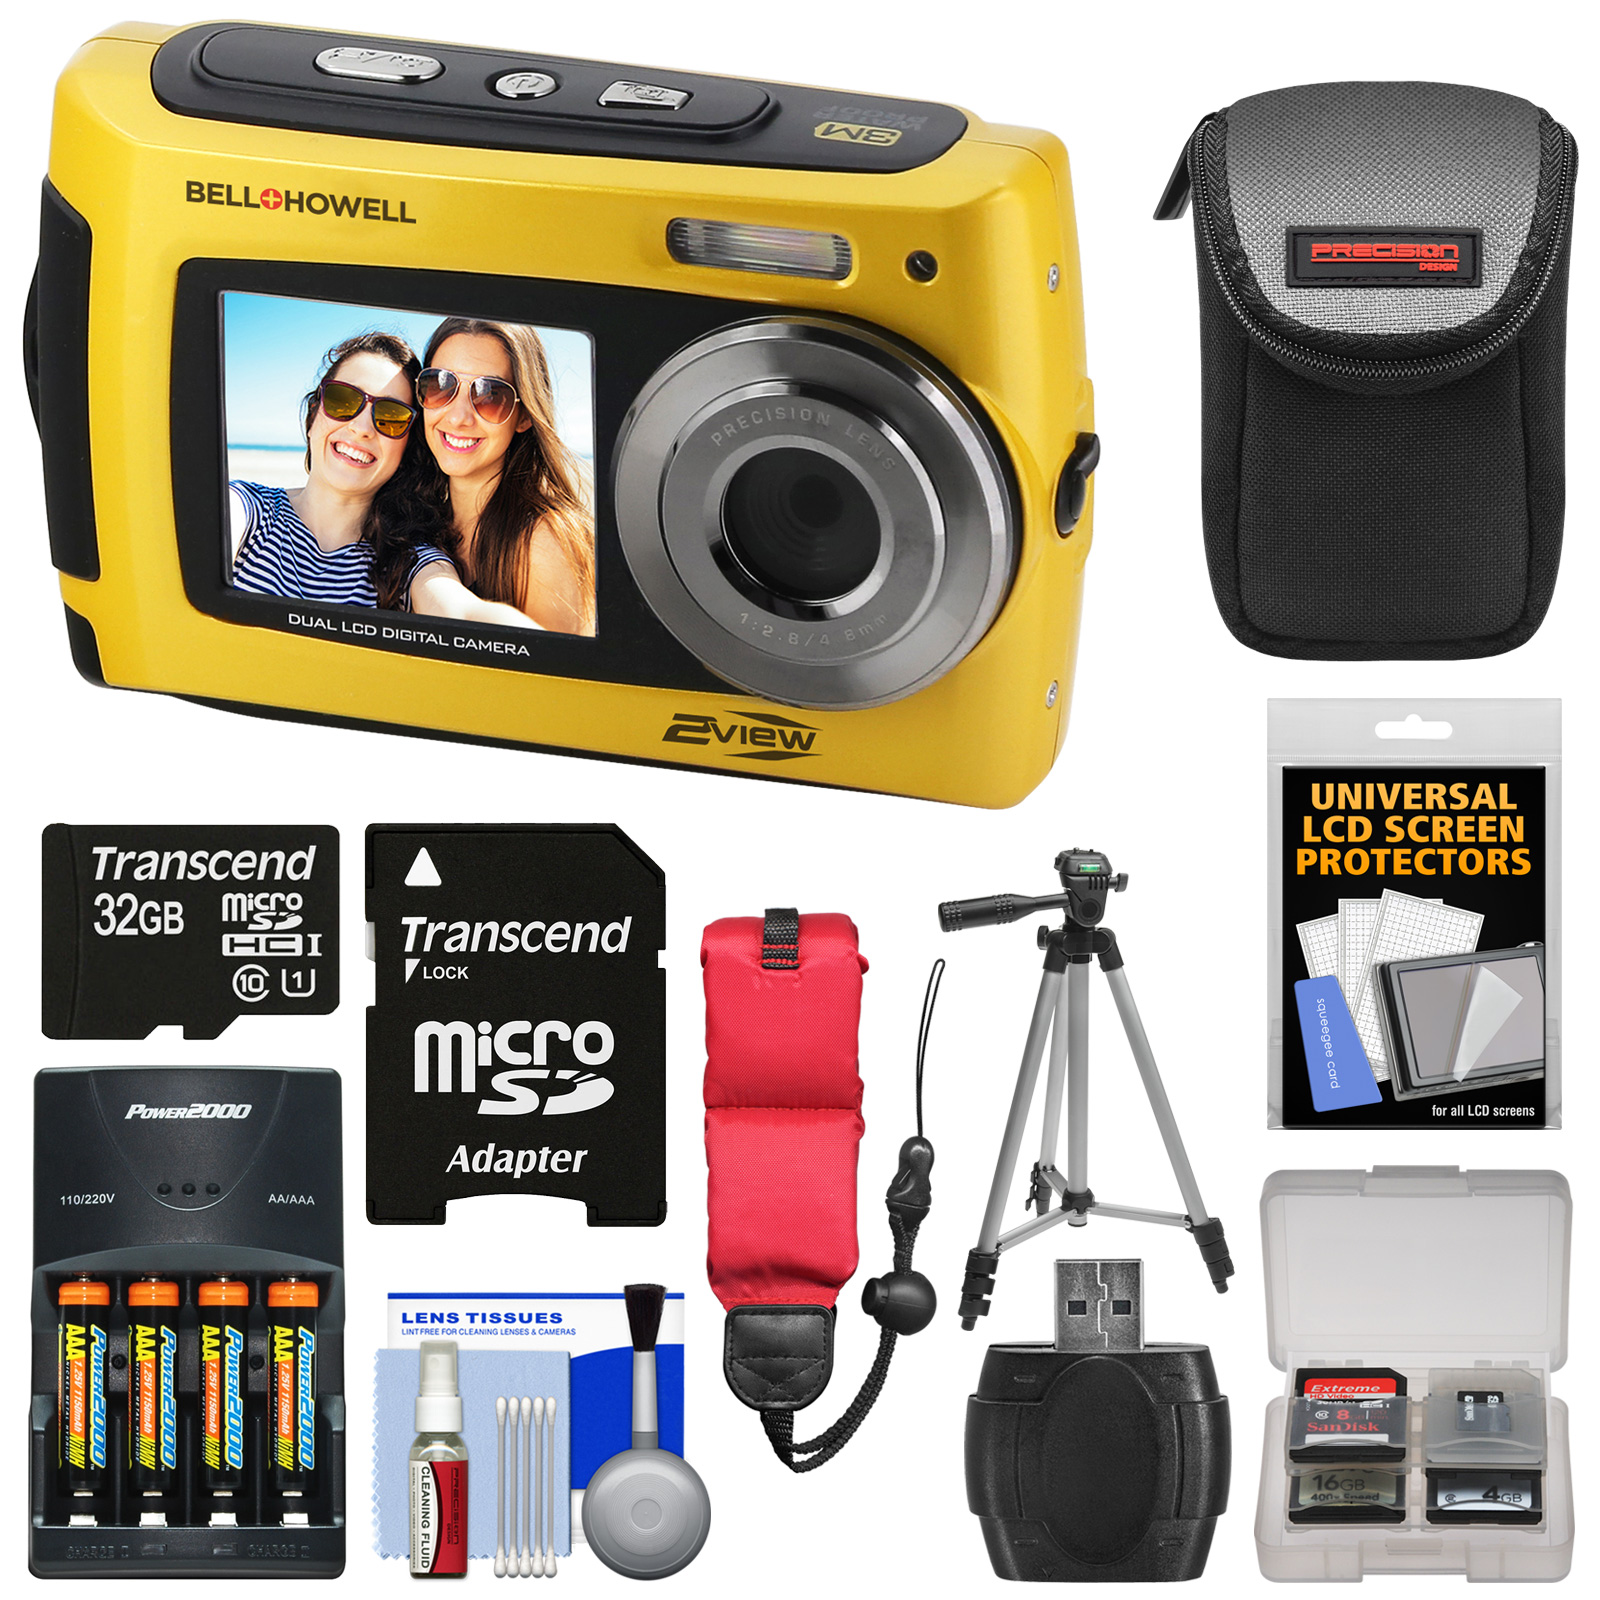 Bell & Howell 2VIEW18 HD Dual Screen Waterproof Digital Camera (Yellow) with 32GB Card + Batteries & Charger + Case + Tripod + Floating Strap + Kit